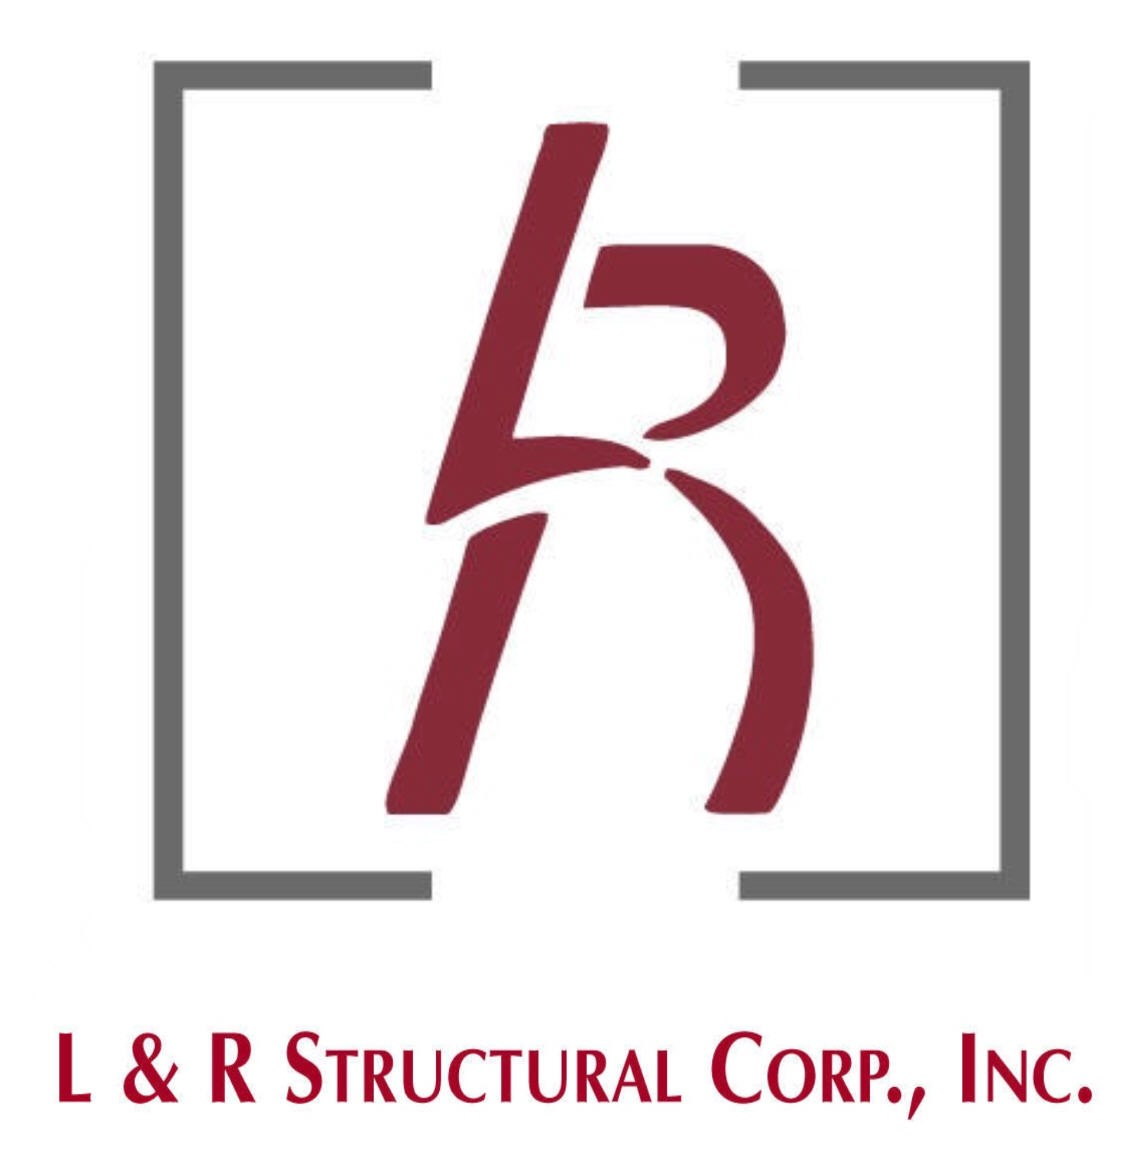 L&R Structural Corp